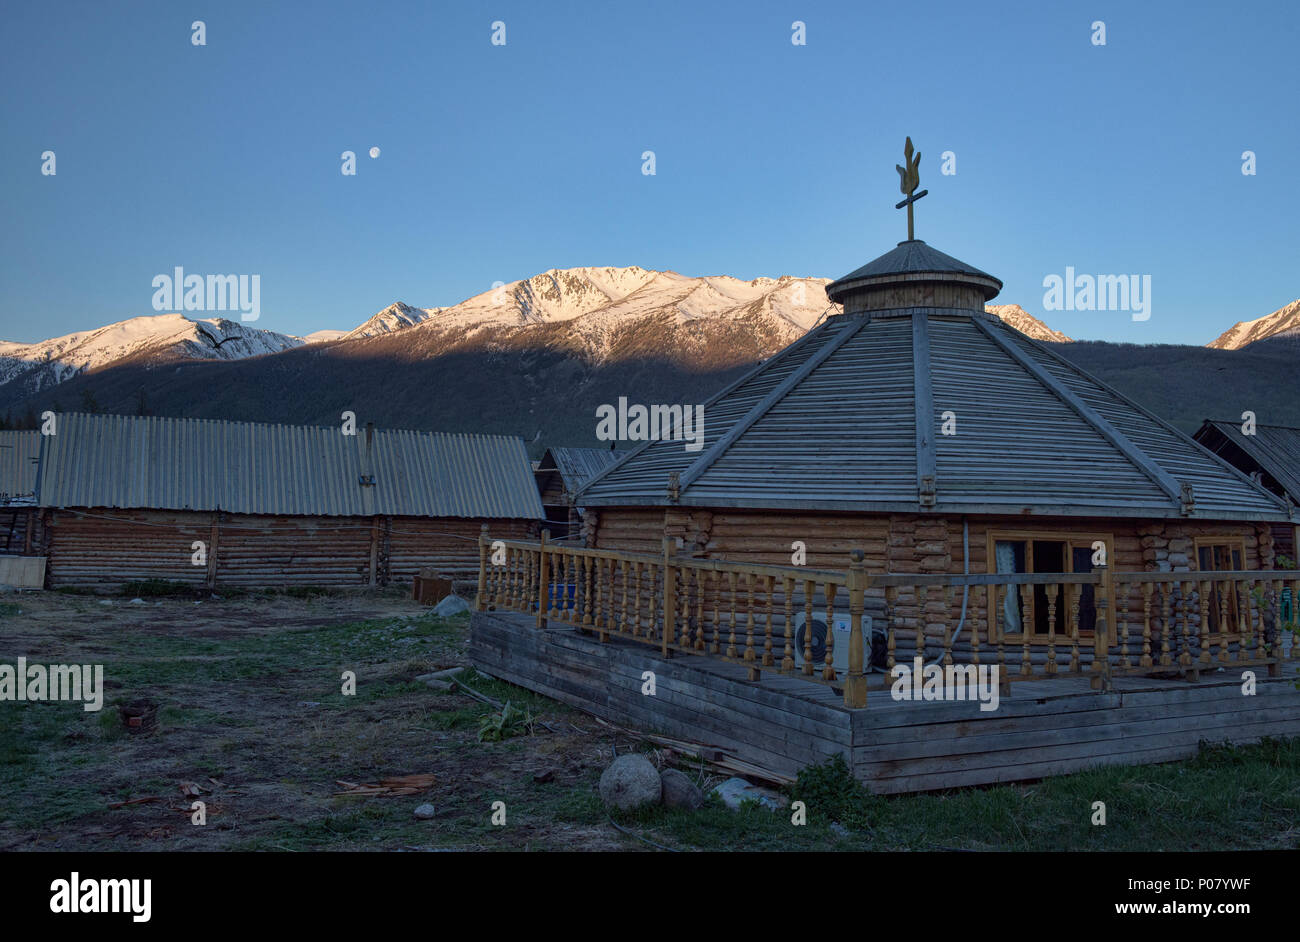 Tuvan village, Kanas Lake National Park, Xinjiang, China - Stock Image